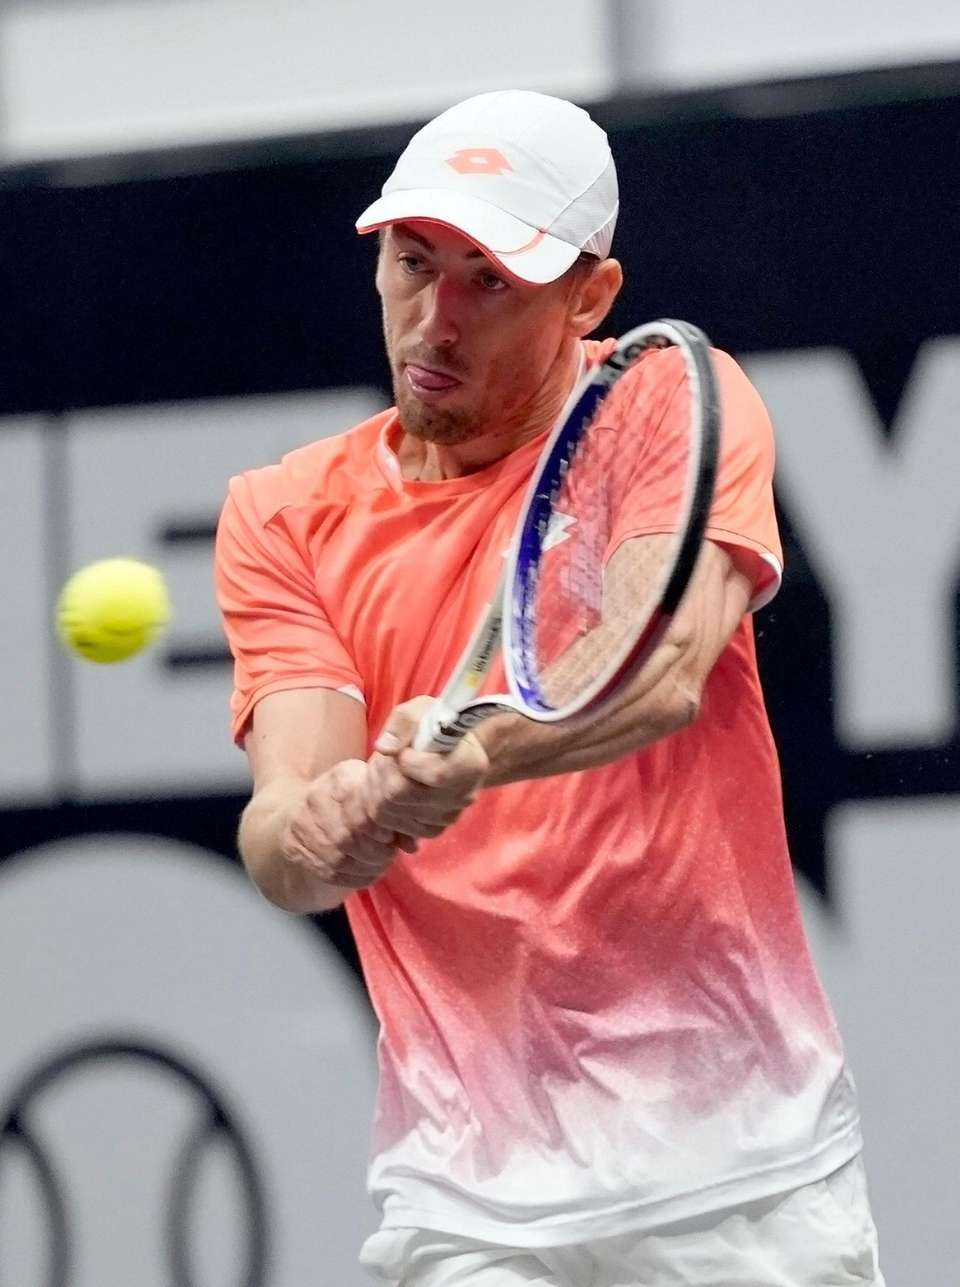 John Millman with the backhand return against Guillermo